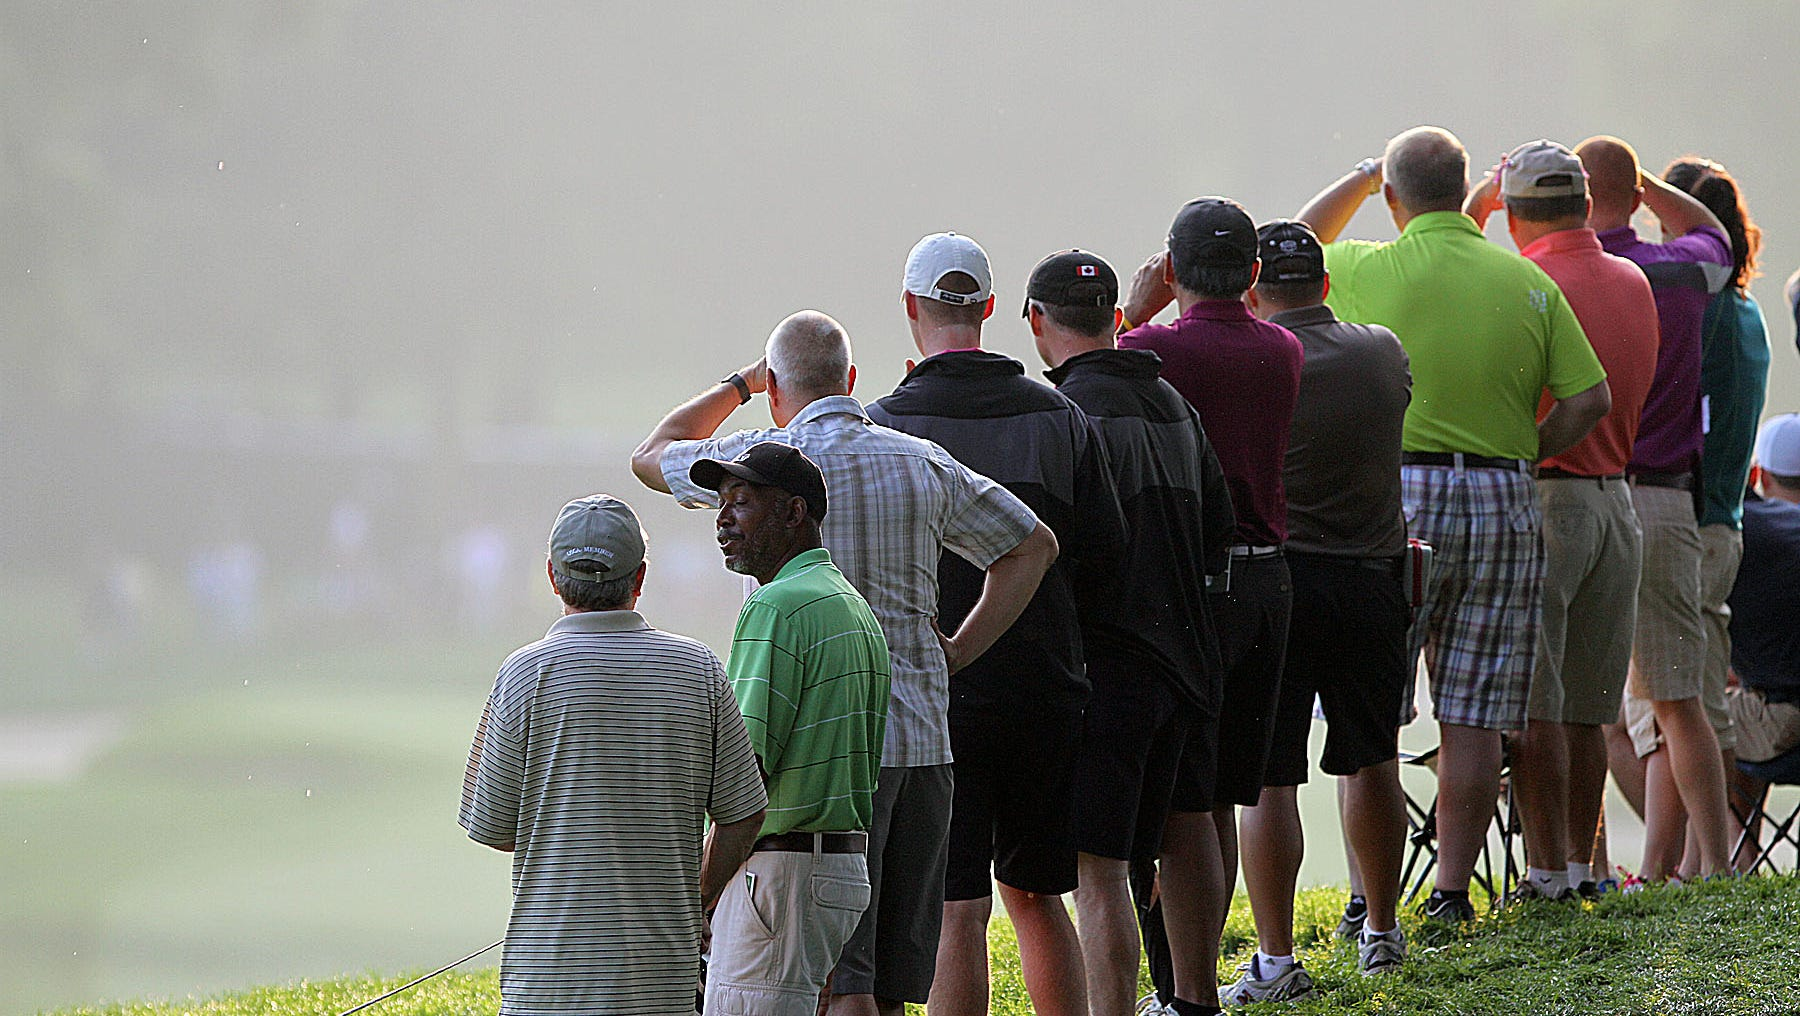 Spectators sheild their eyes from the sun as they watch the action thursday morning. Photo by Tina Yee